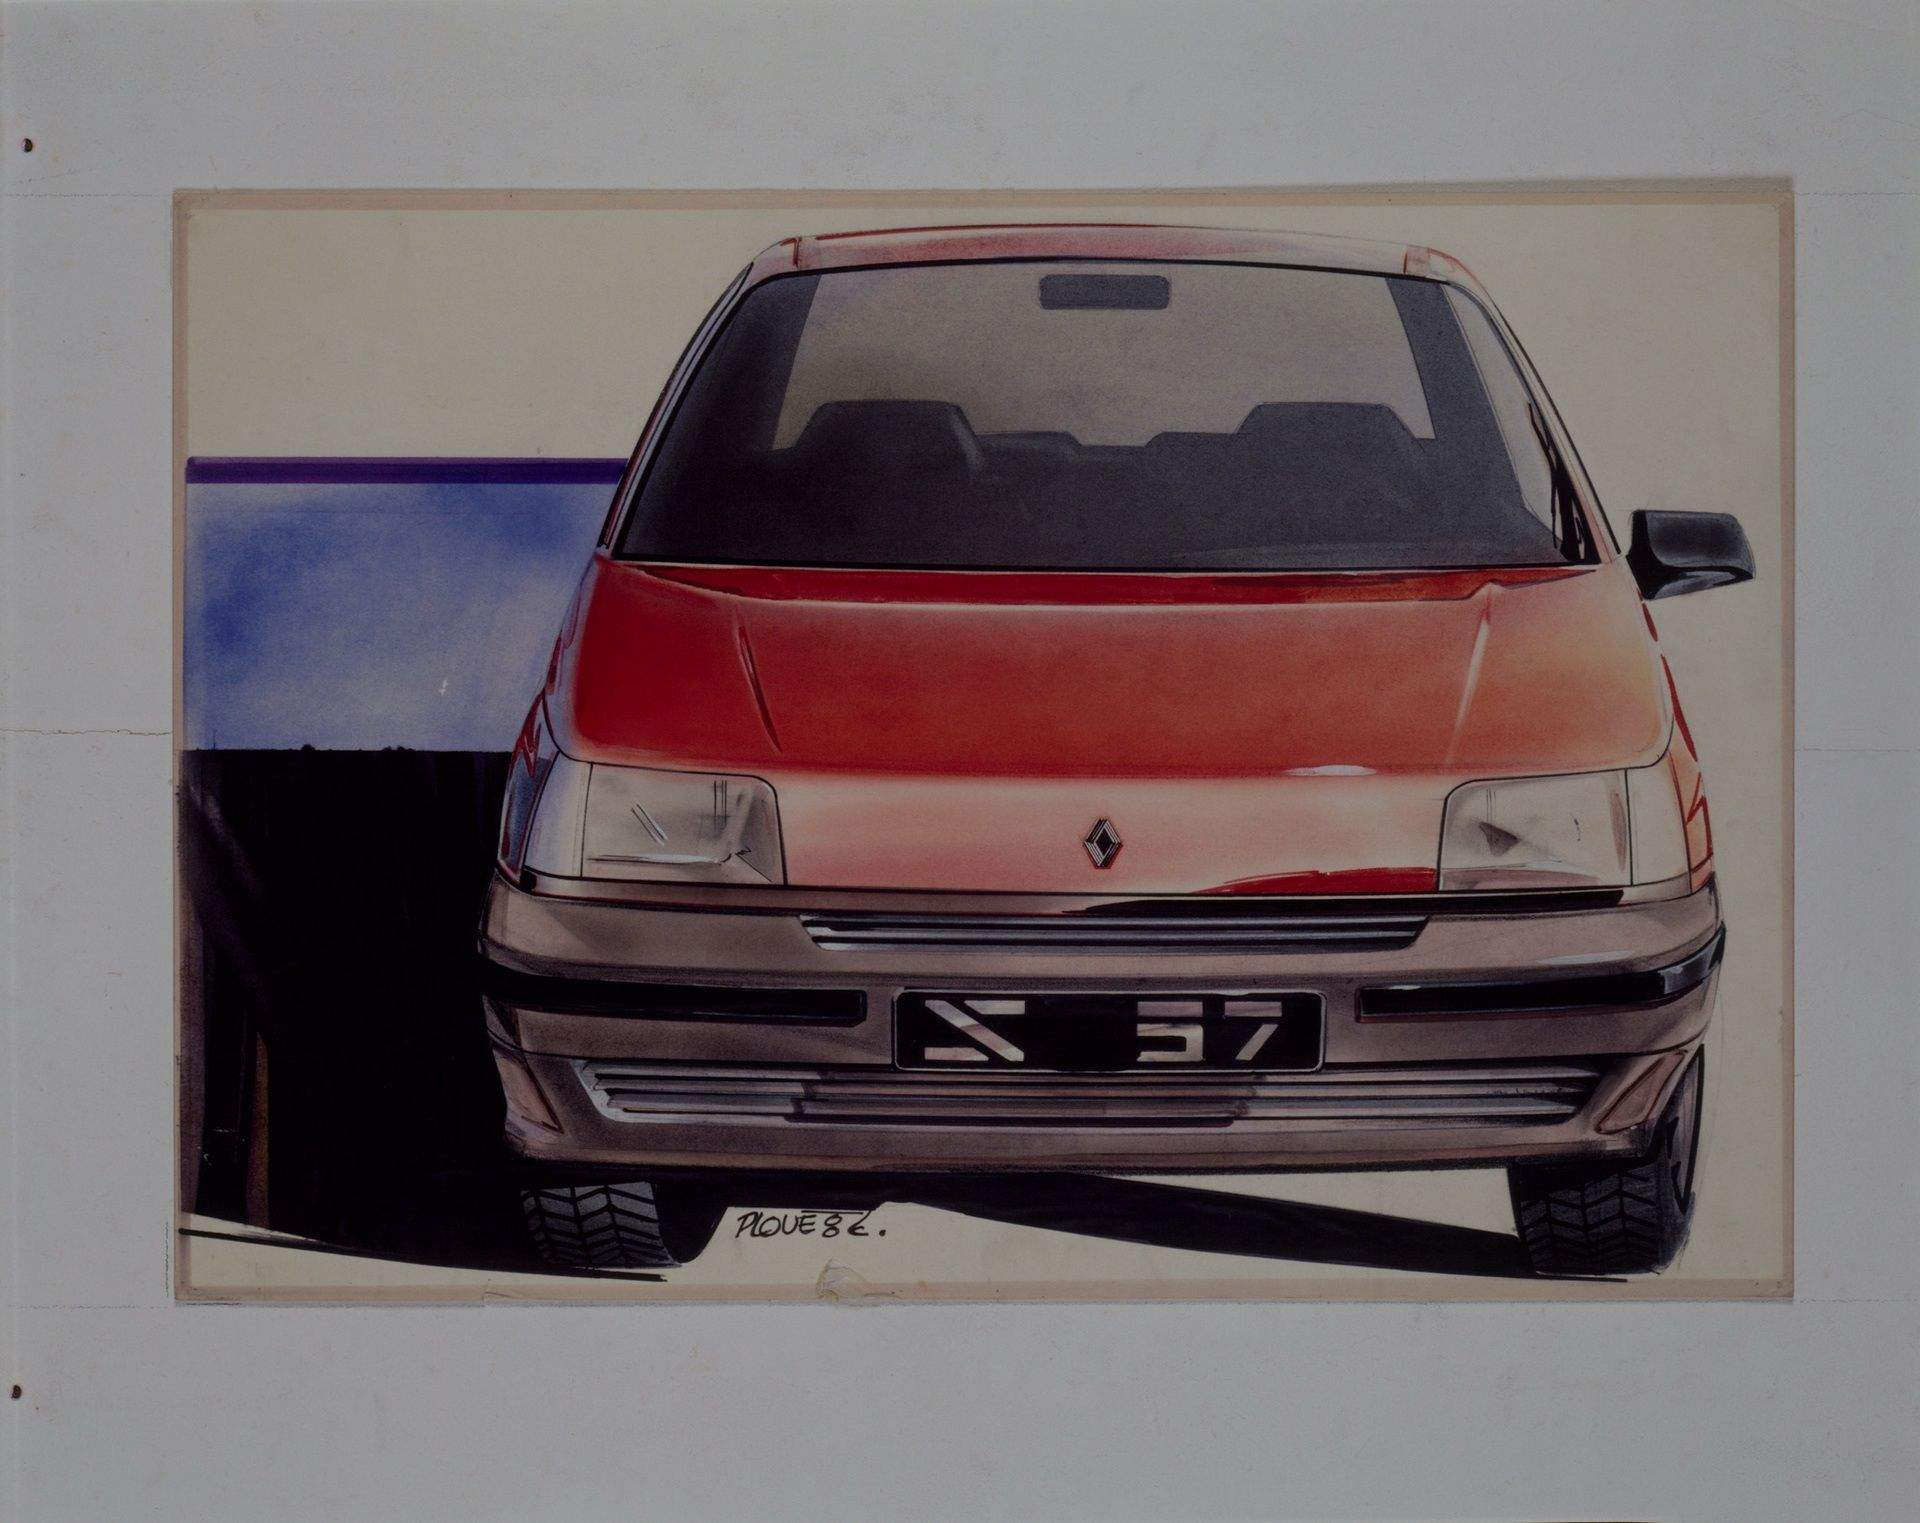 2020-30-years-of-Renault-CLIO-Renault-CLIO-I-1990-1999-1